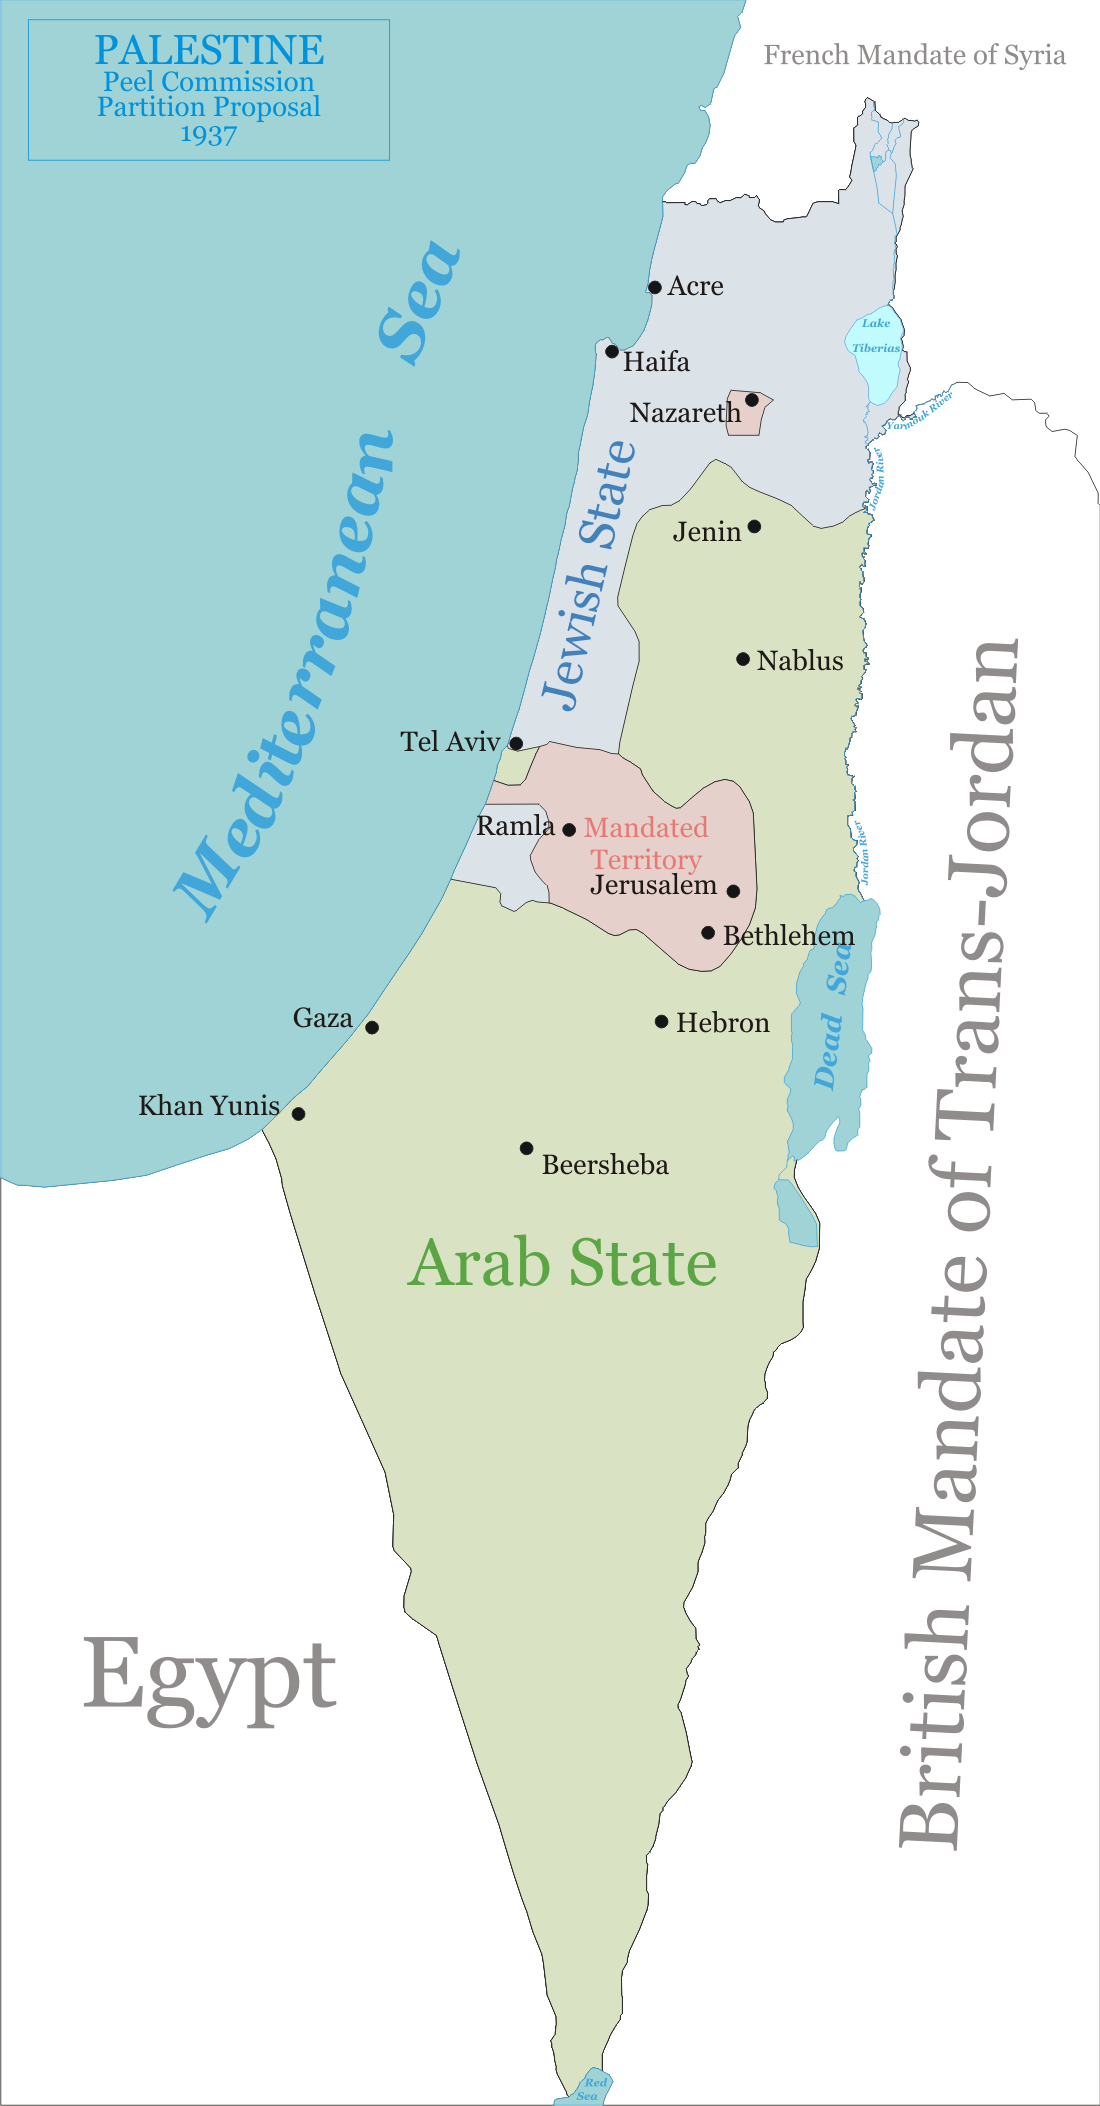 Proposed Partition of Palestine